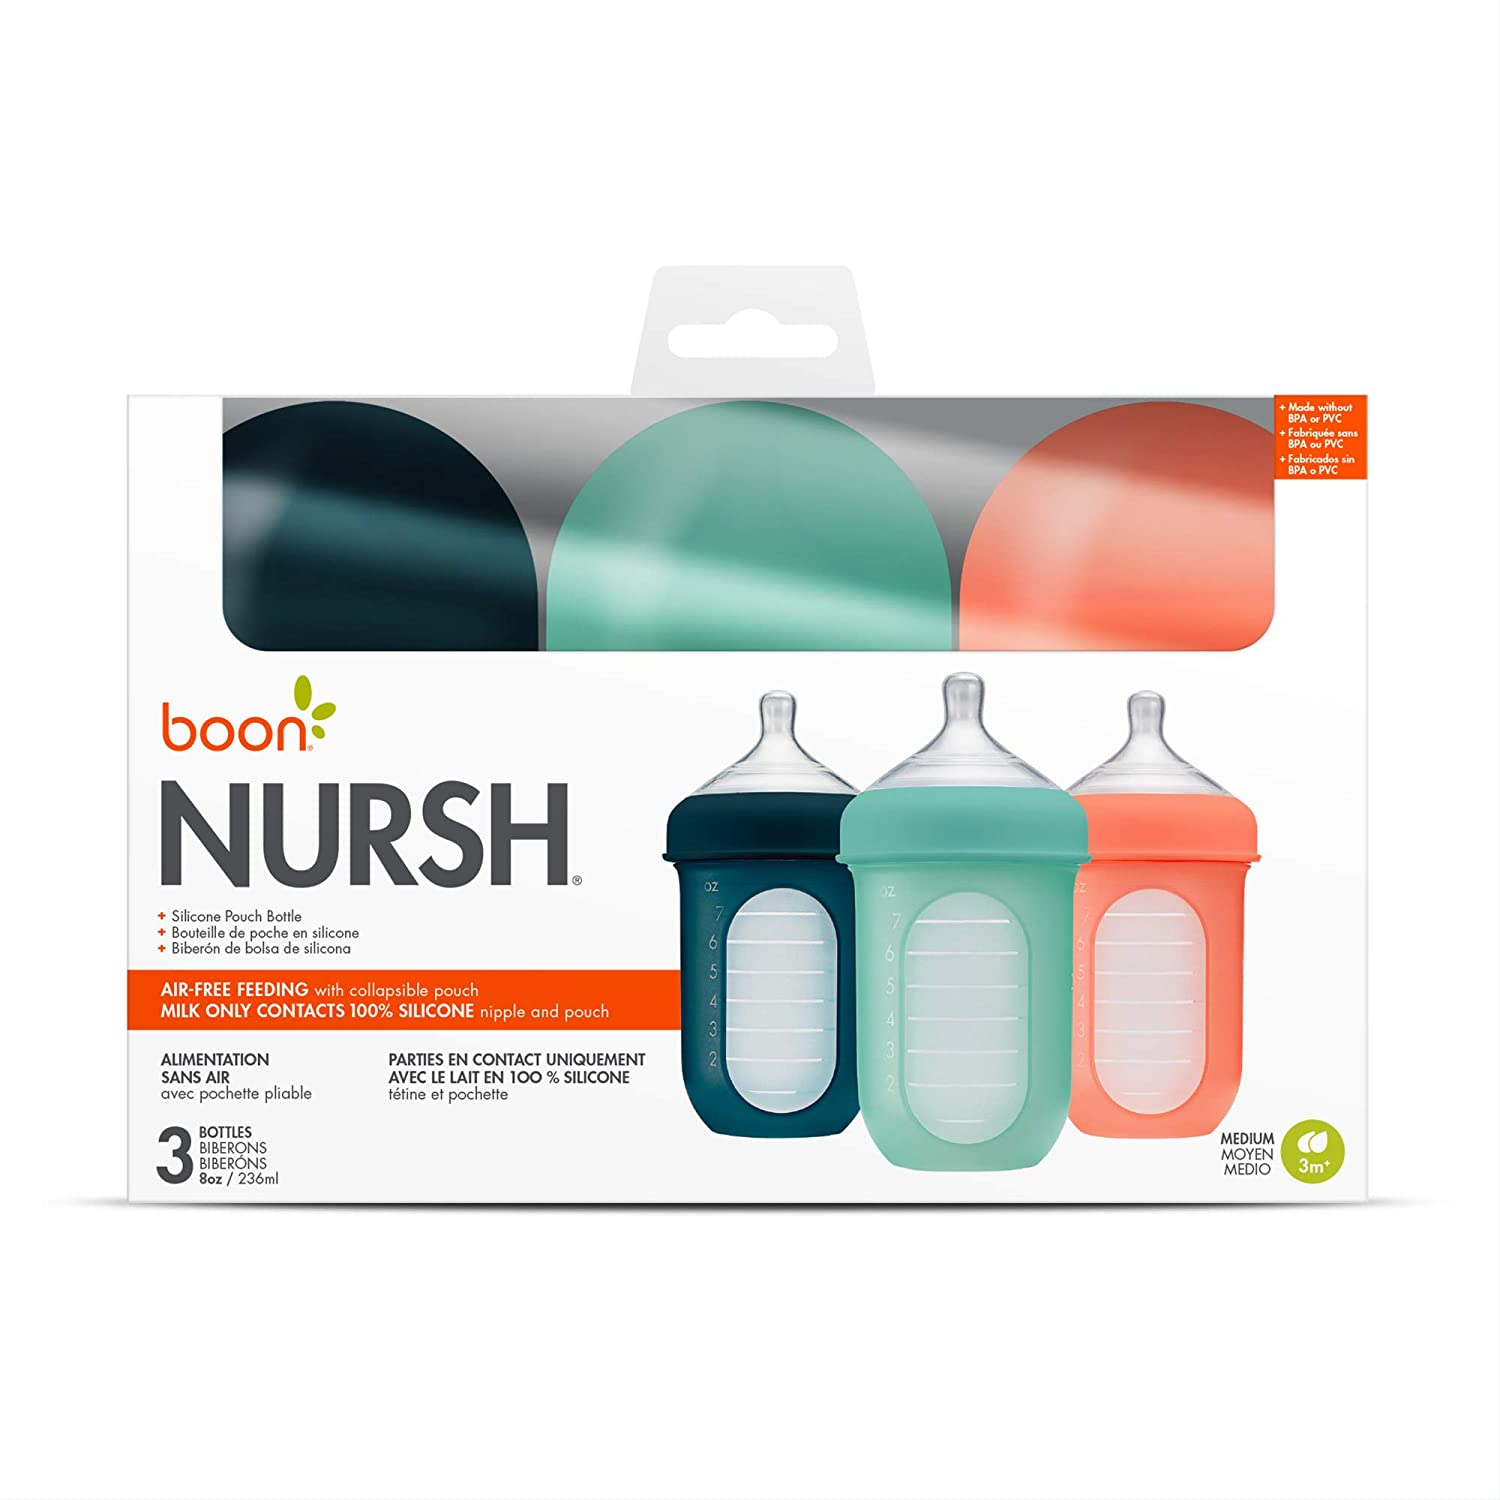 8 Ounce Pack of 3 Boon NURSH Reusable Silicone Pouch Bottles